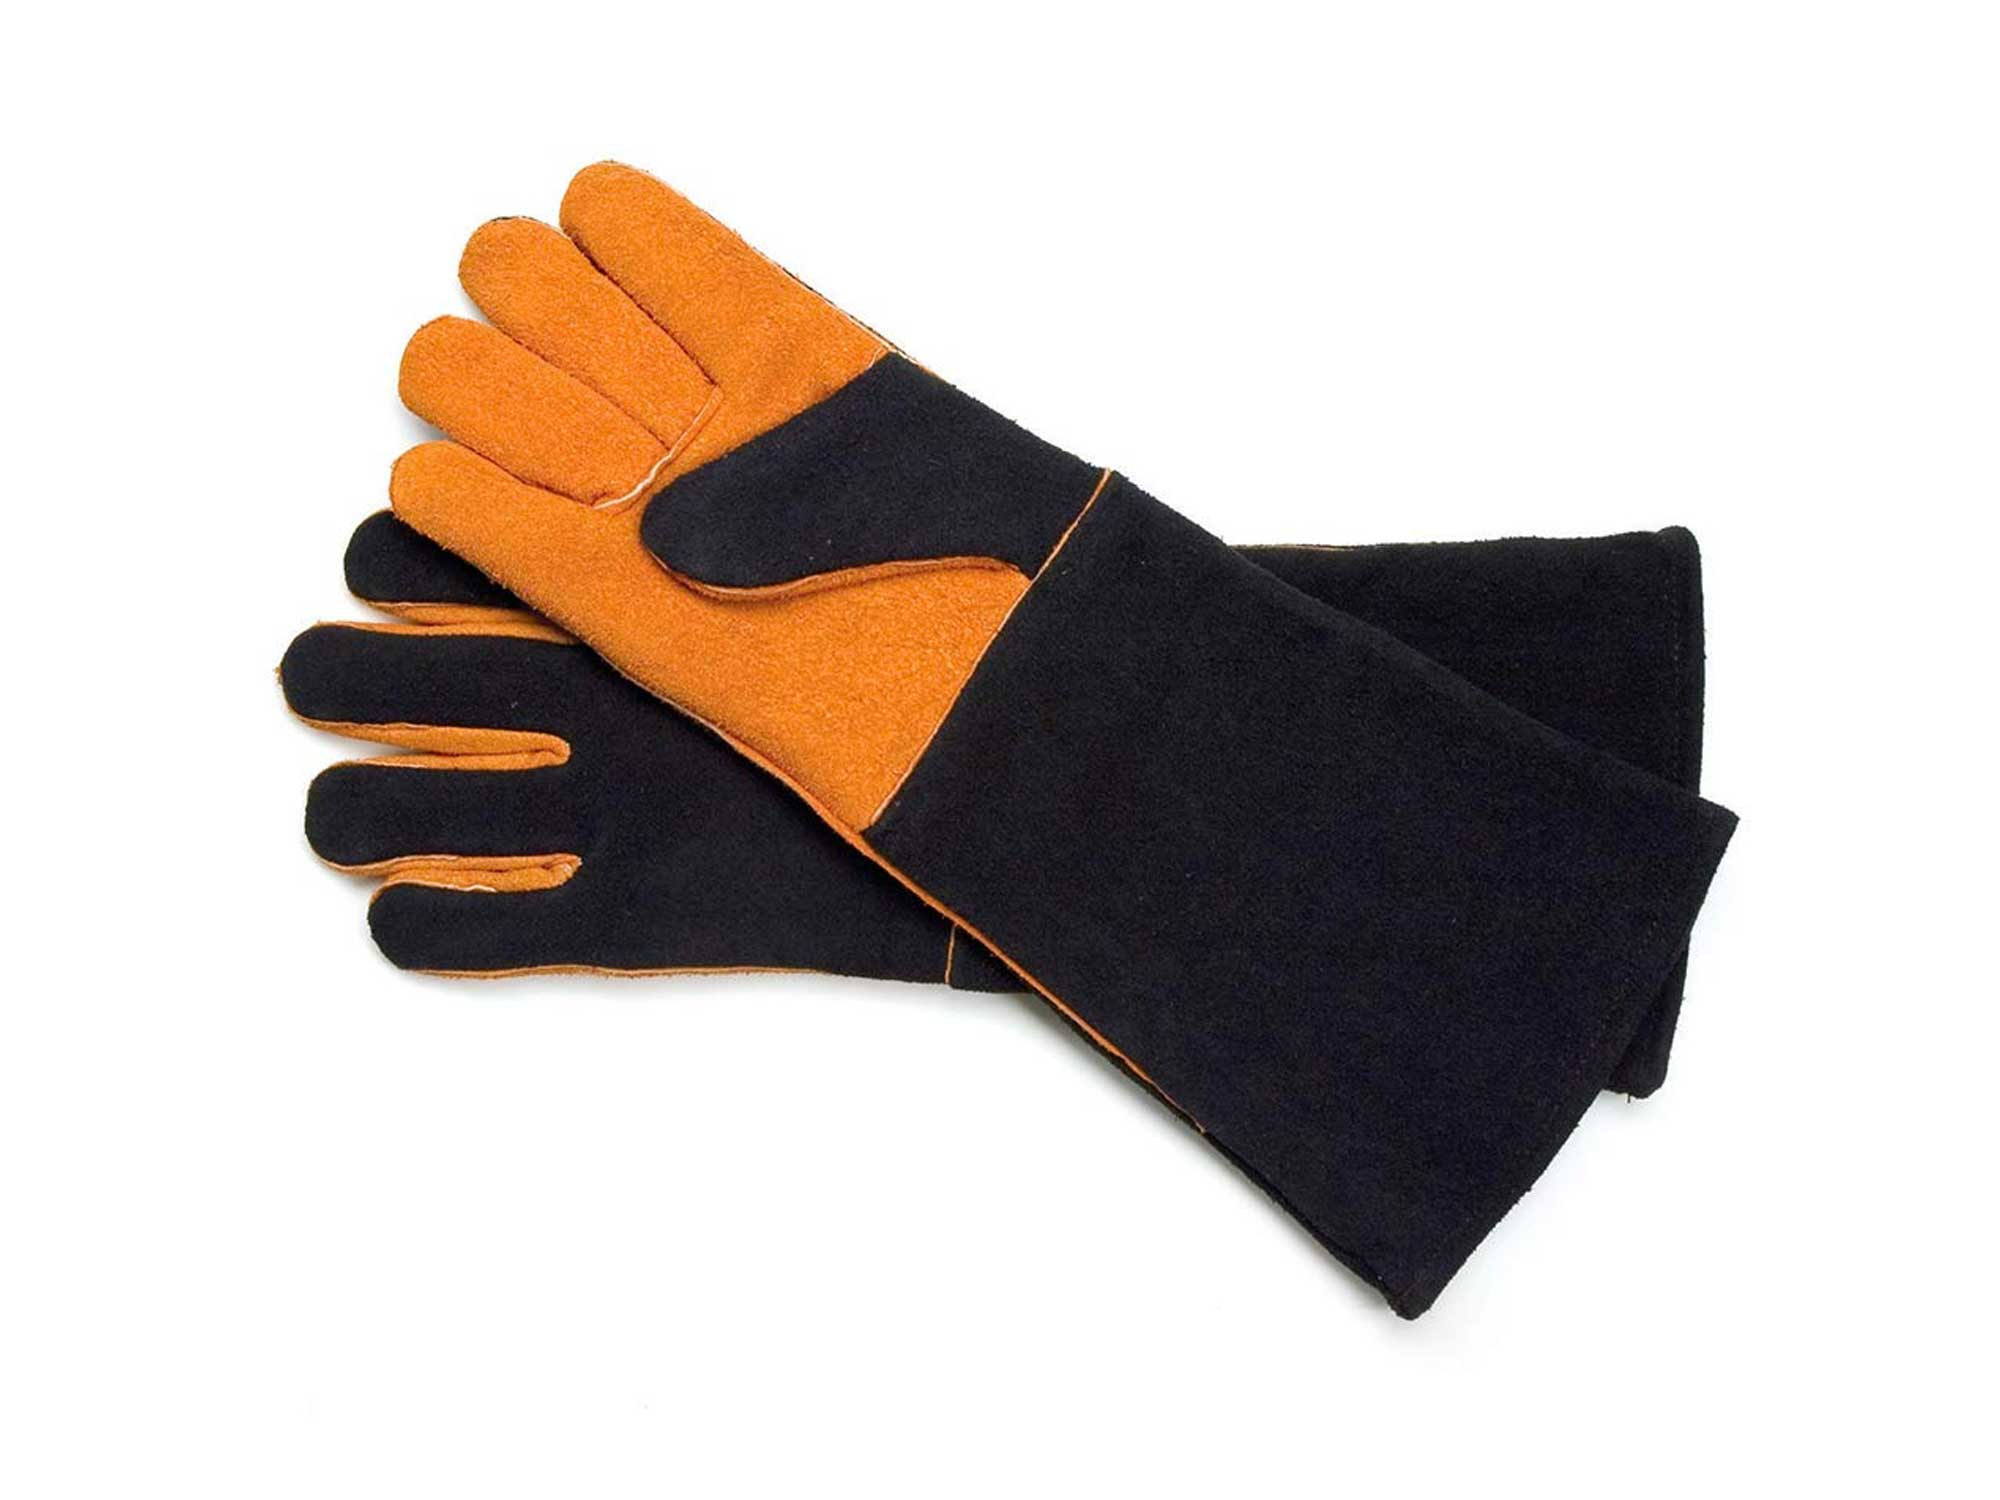 Steven Raichlen Best of Barbecue Extra Long Suede Grill Gloves (Pair)